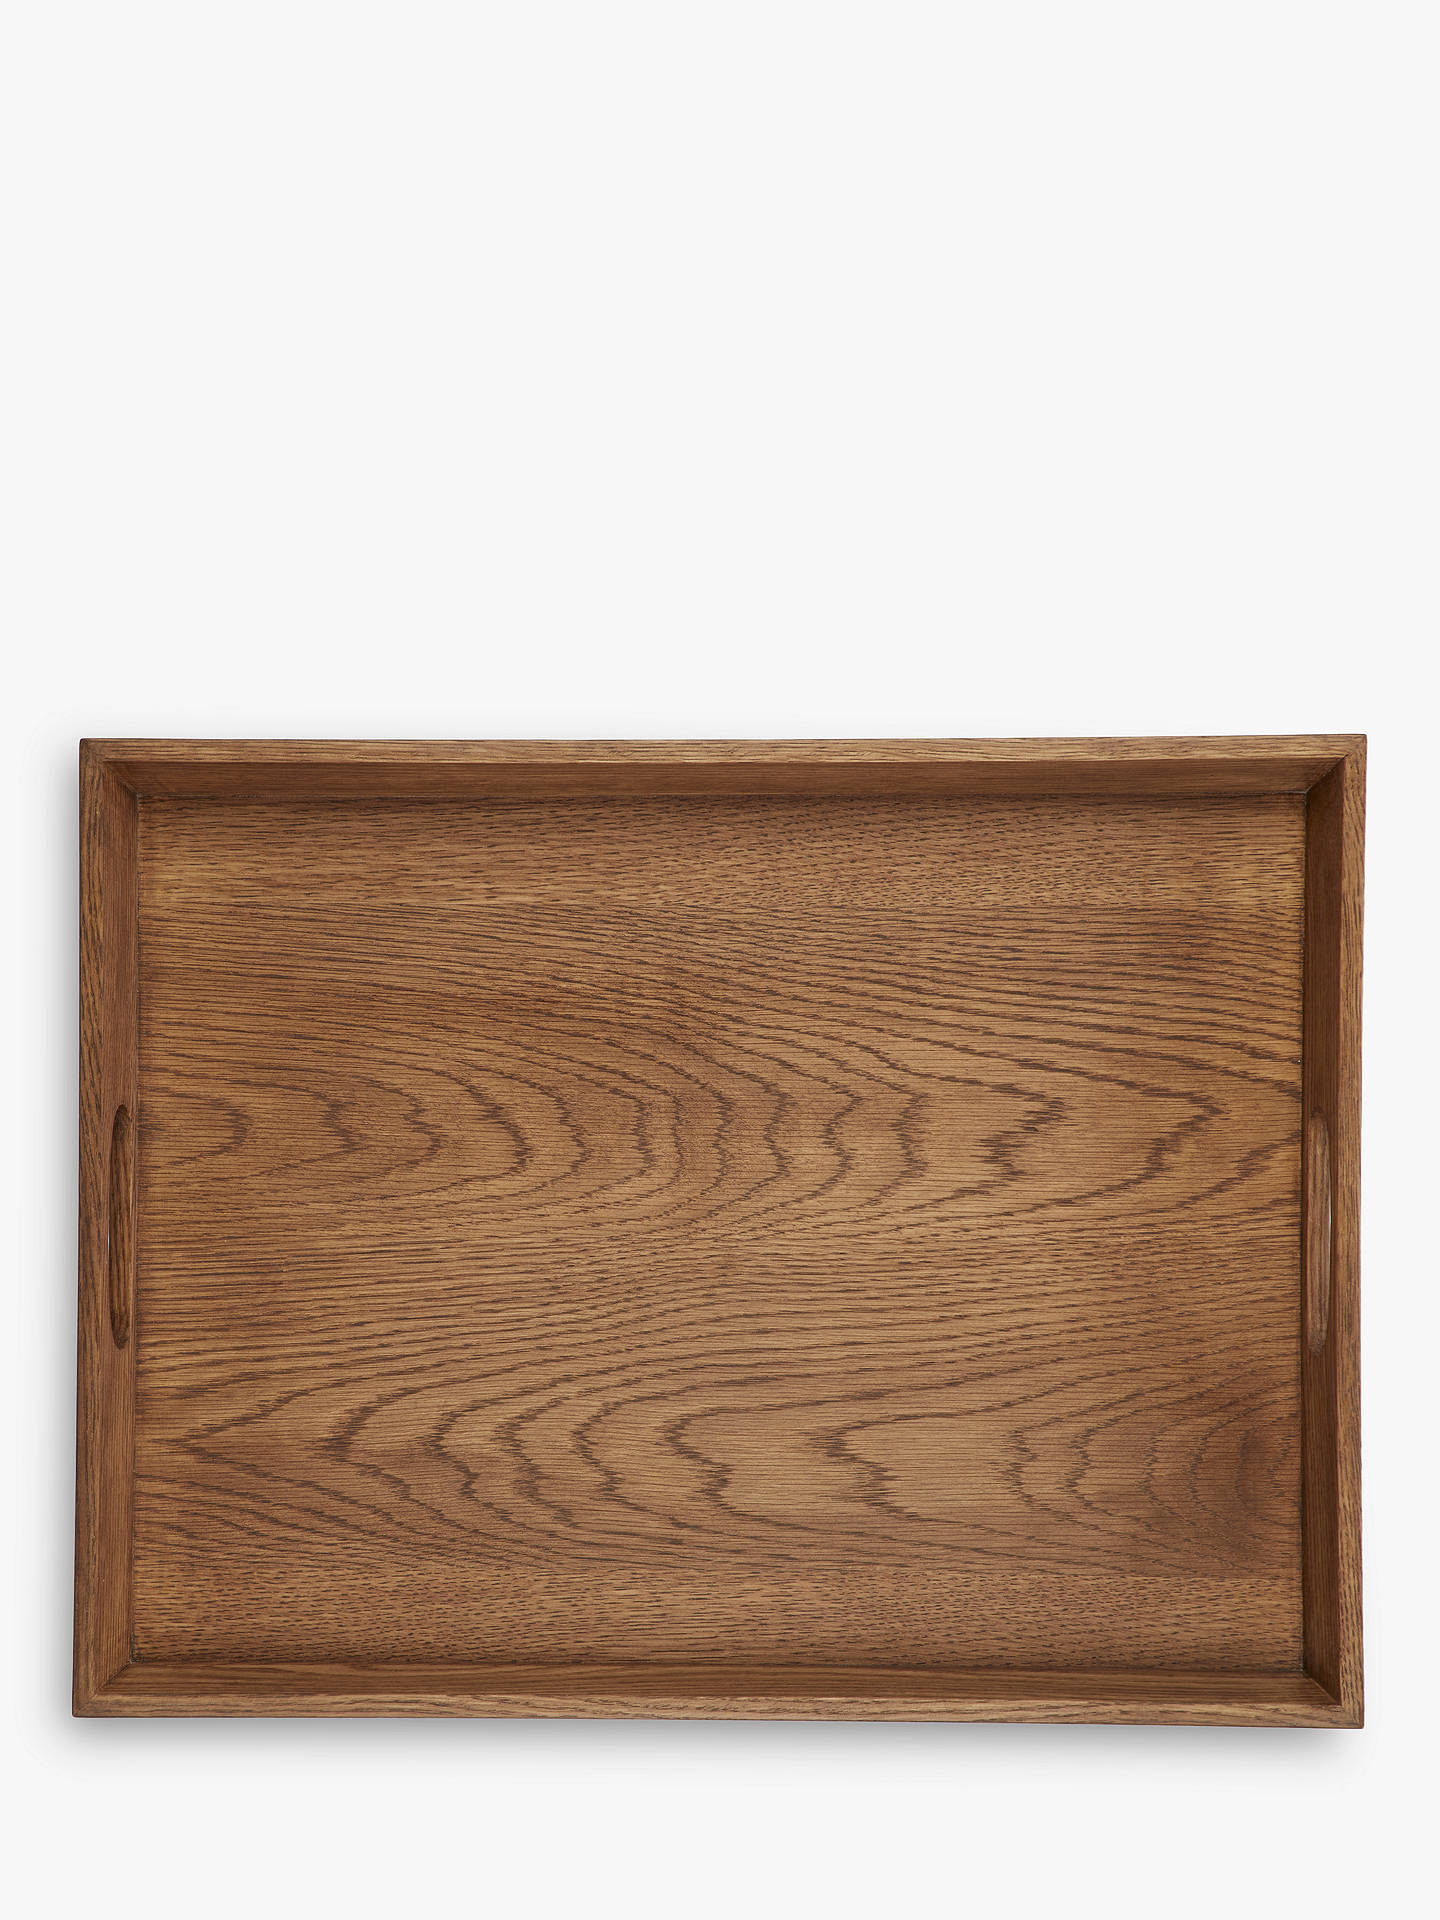 Buycroft collection oak wood stacking tray natural large online at johnlewis com